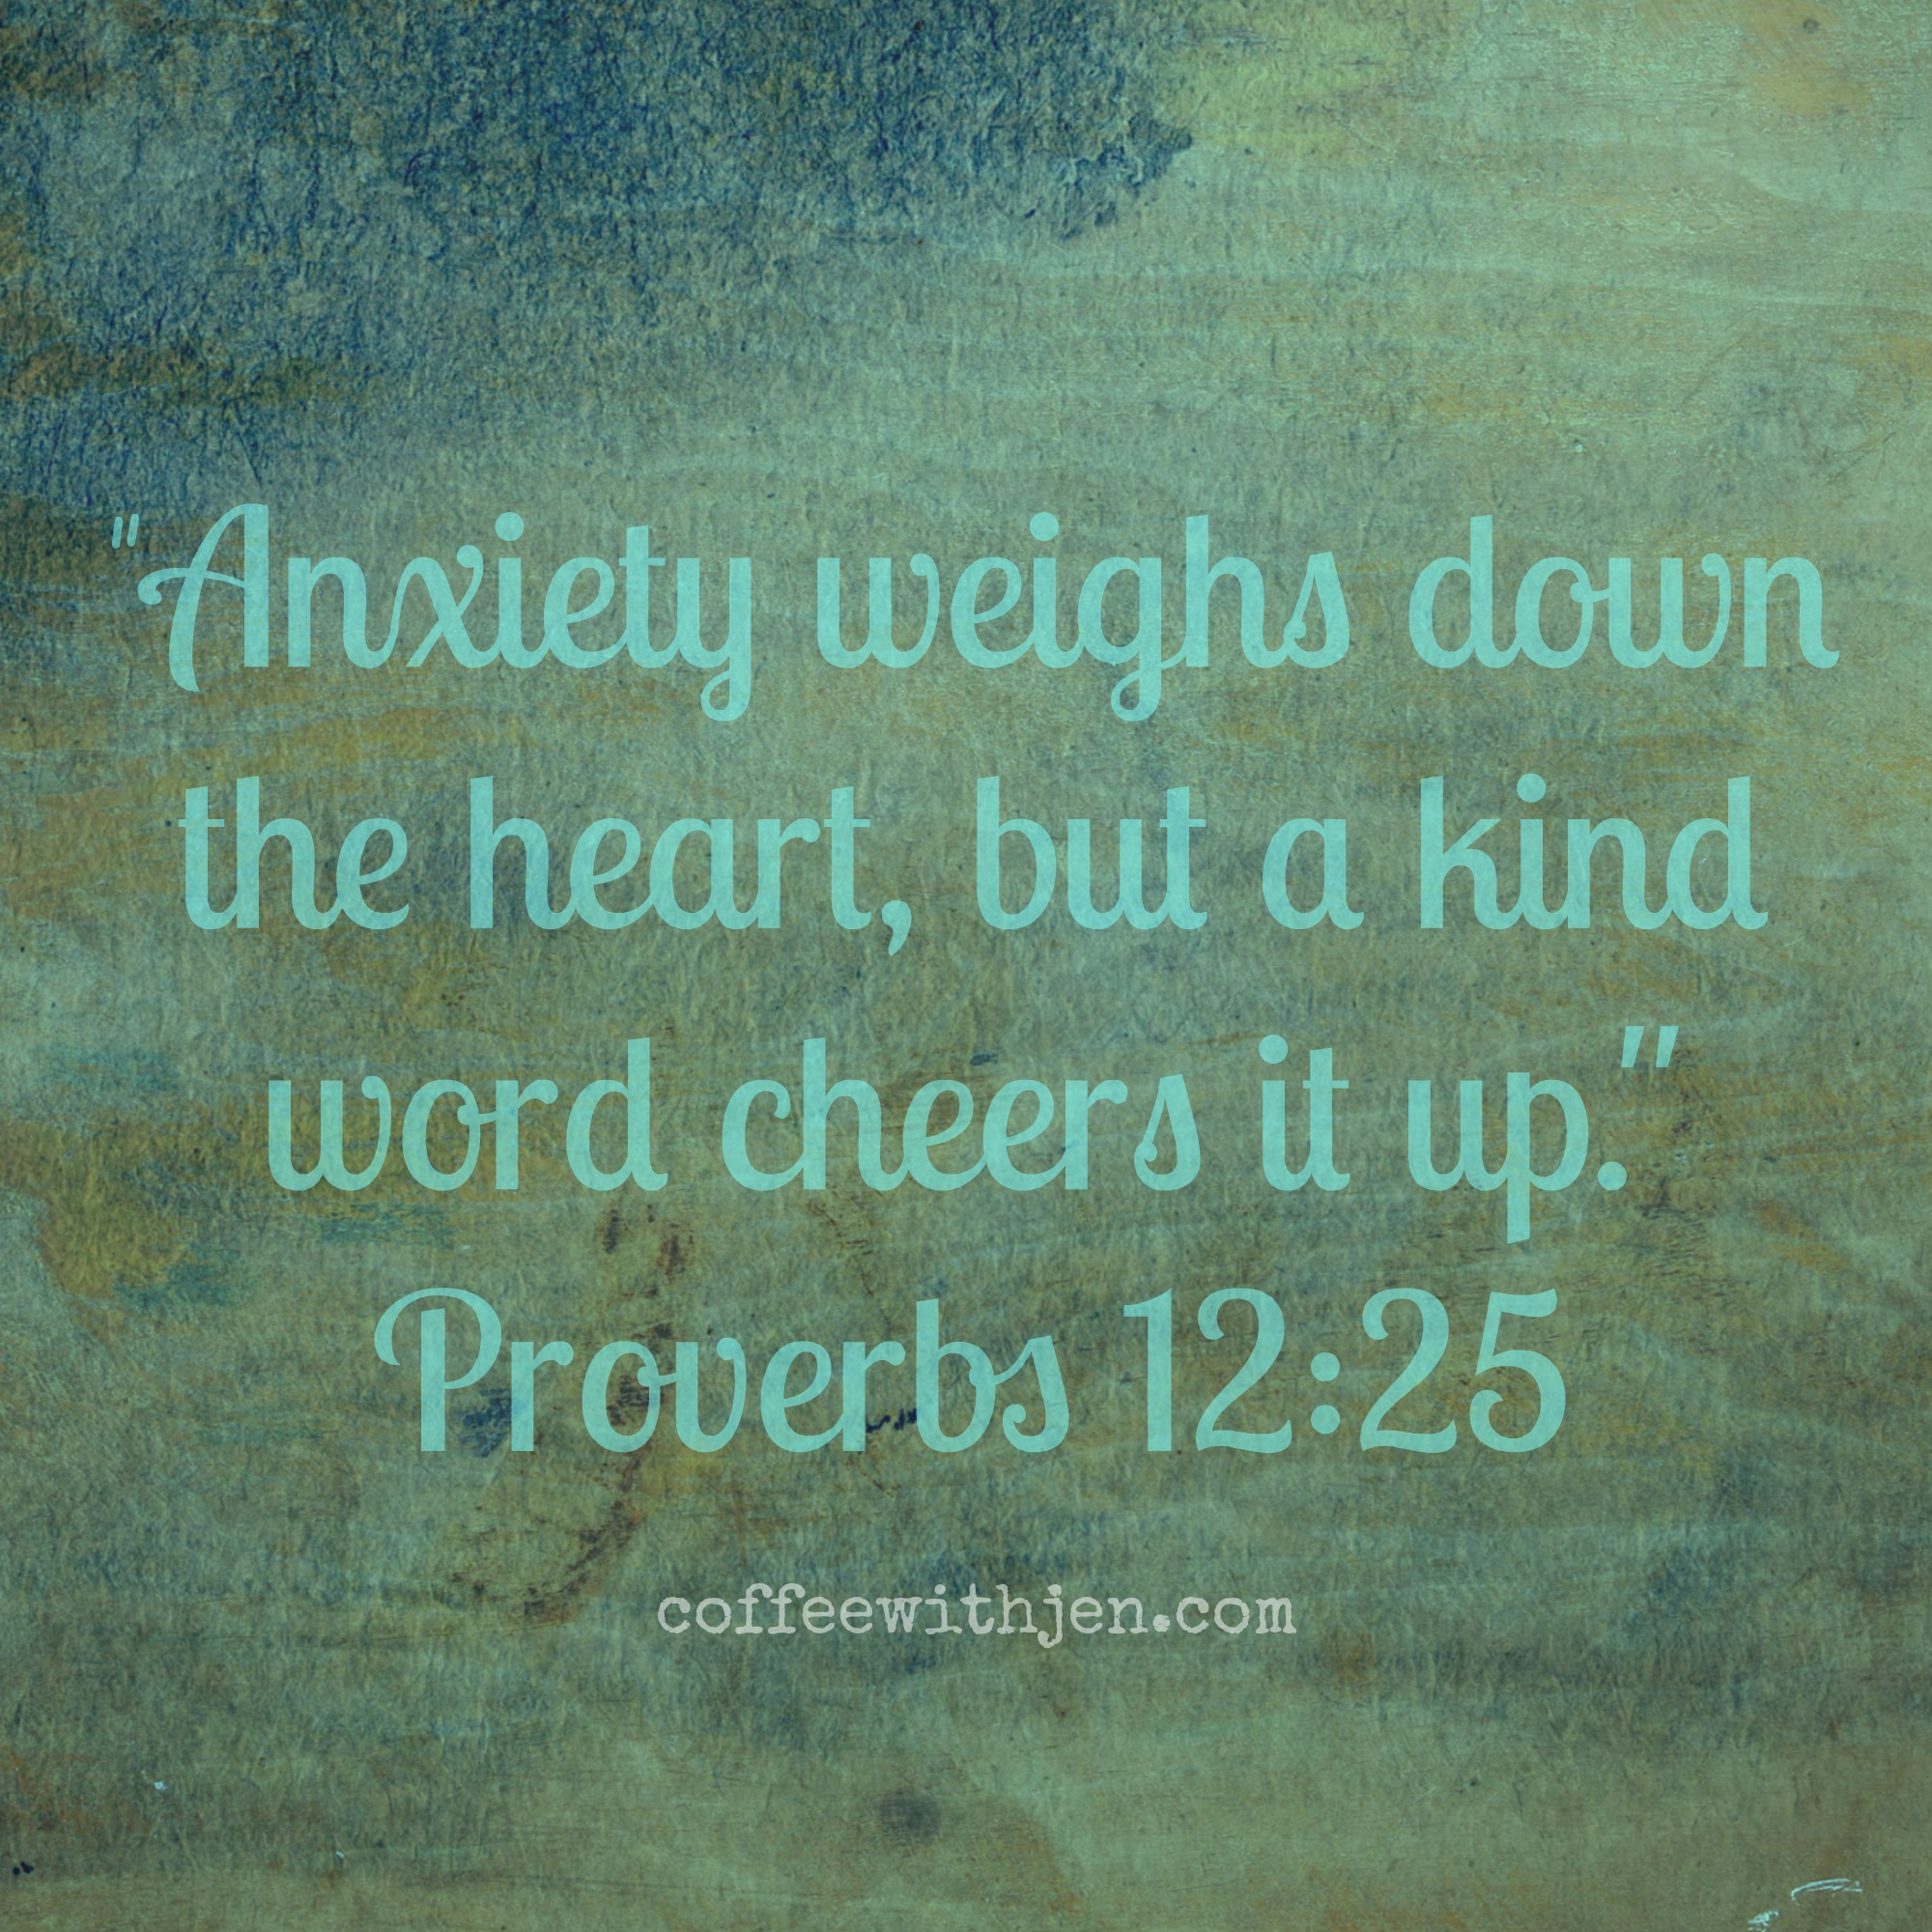 Anxiety weighs down the heart, but a kind word cheers it up.